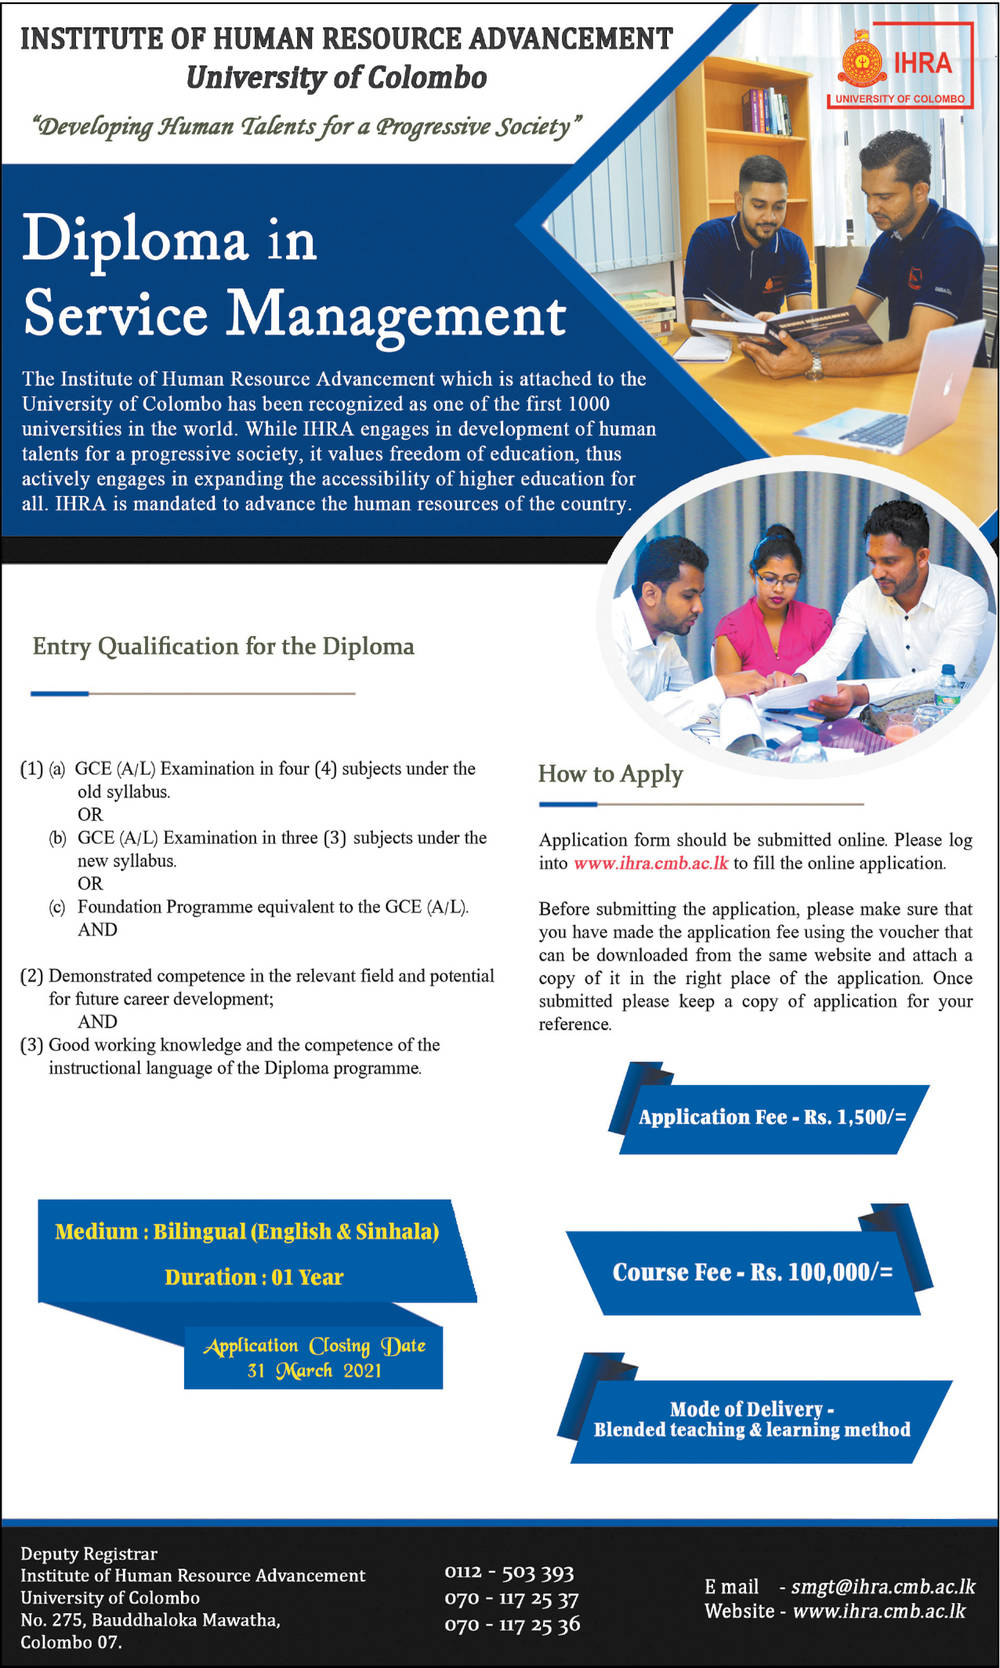 Diploma in Service Management - Institute of Human Resource Advancement - University of Colombo